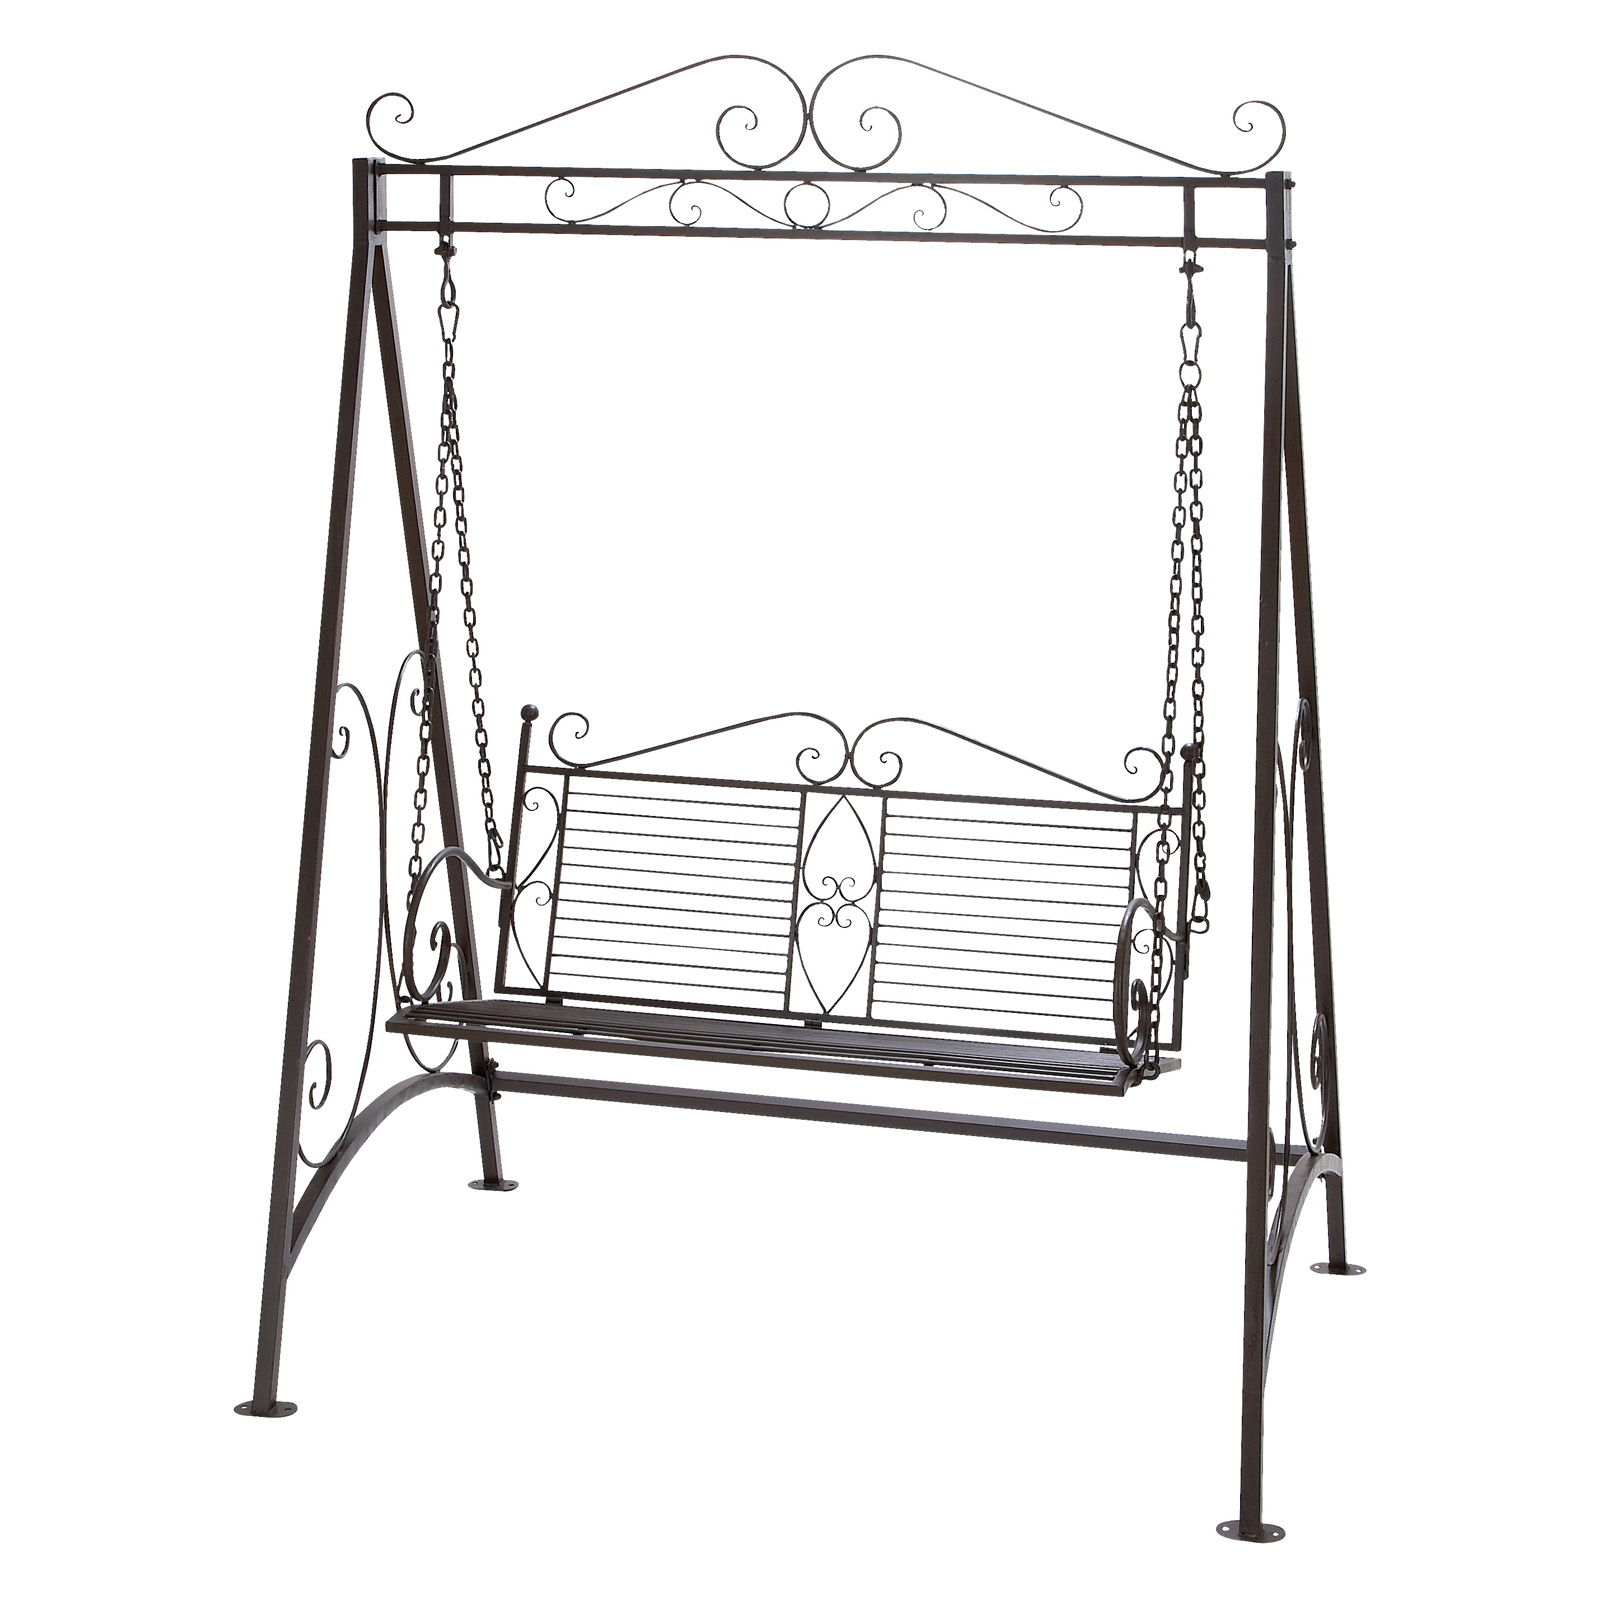 Delightful Deco 79 Metal Garden Swing, 87 Inch By 62 Inch